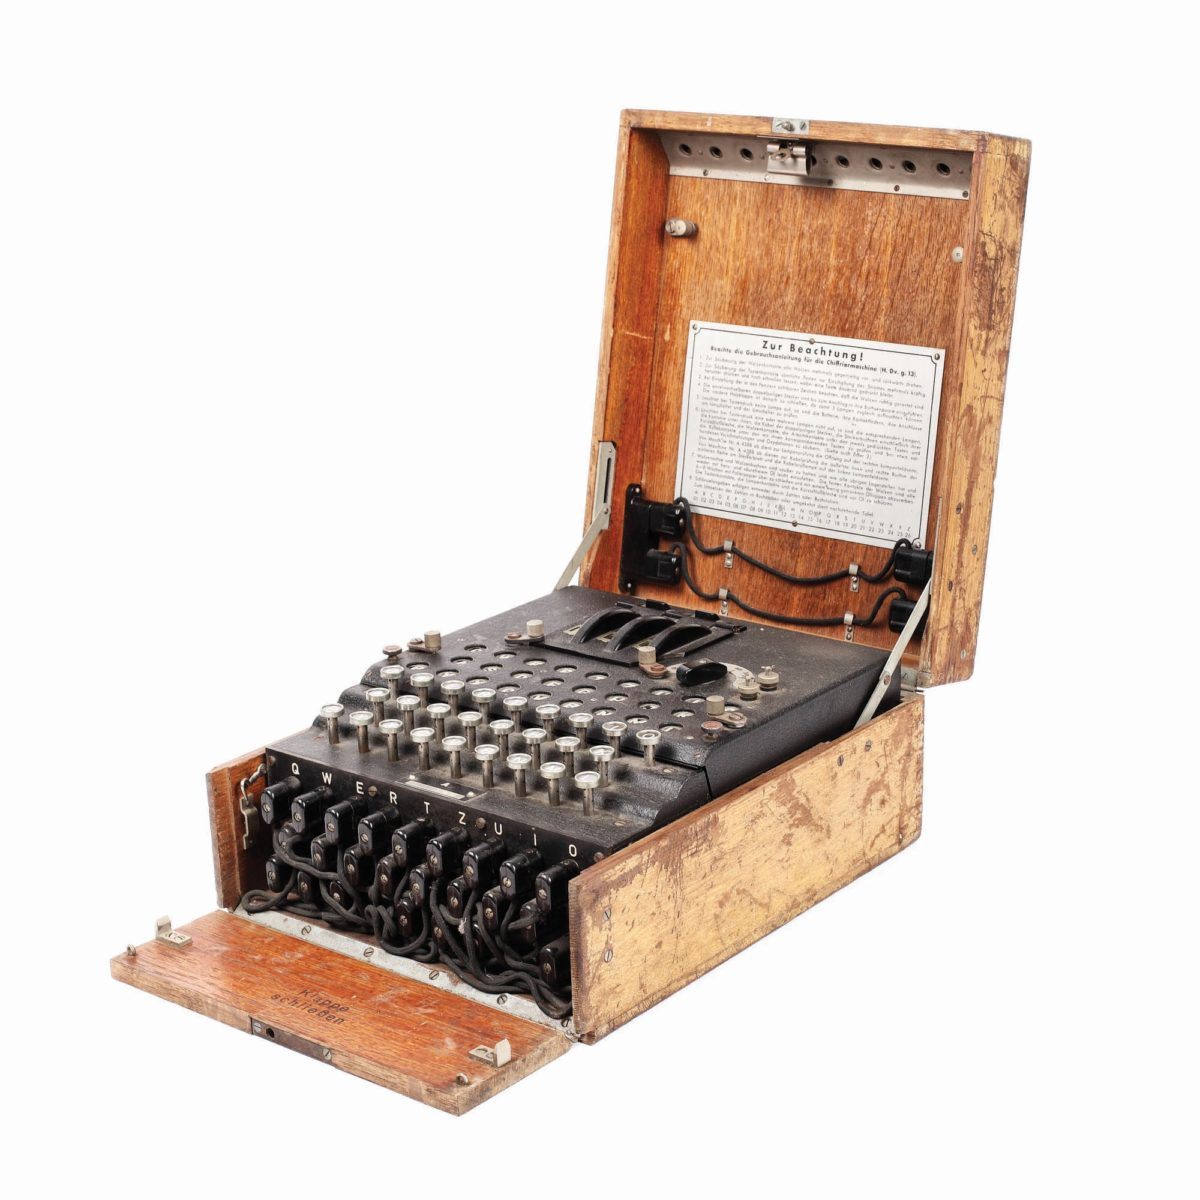 Wwii Enigma Cipher Machine Sells For Eur 45 000 At